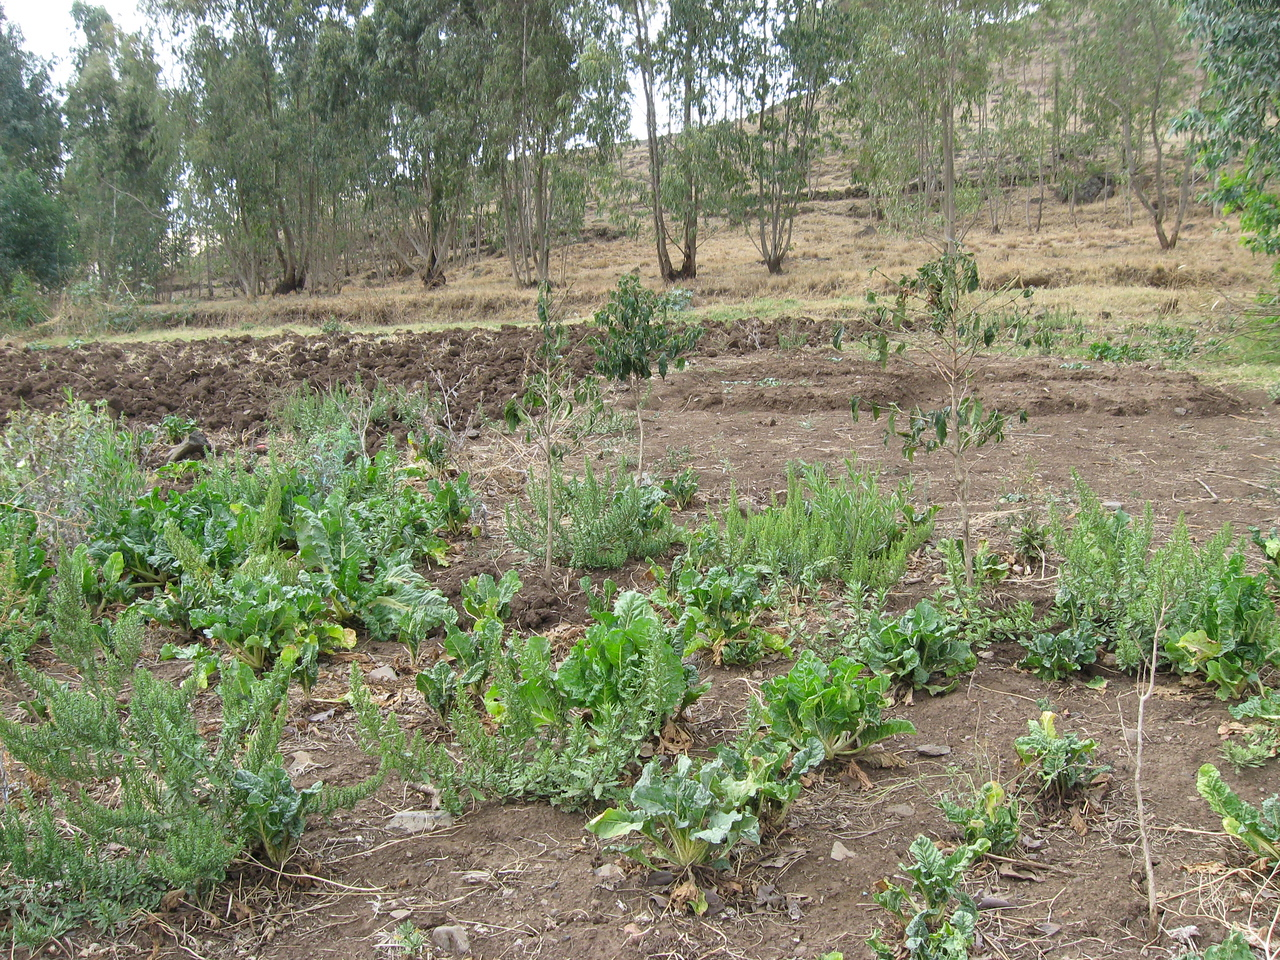 Crops for income generation